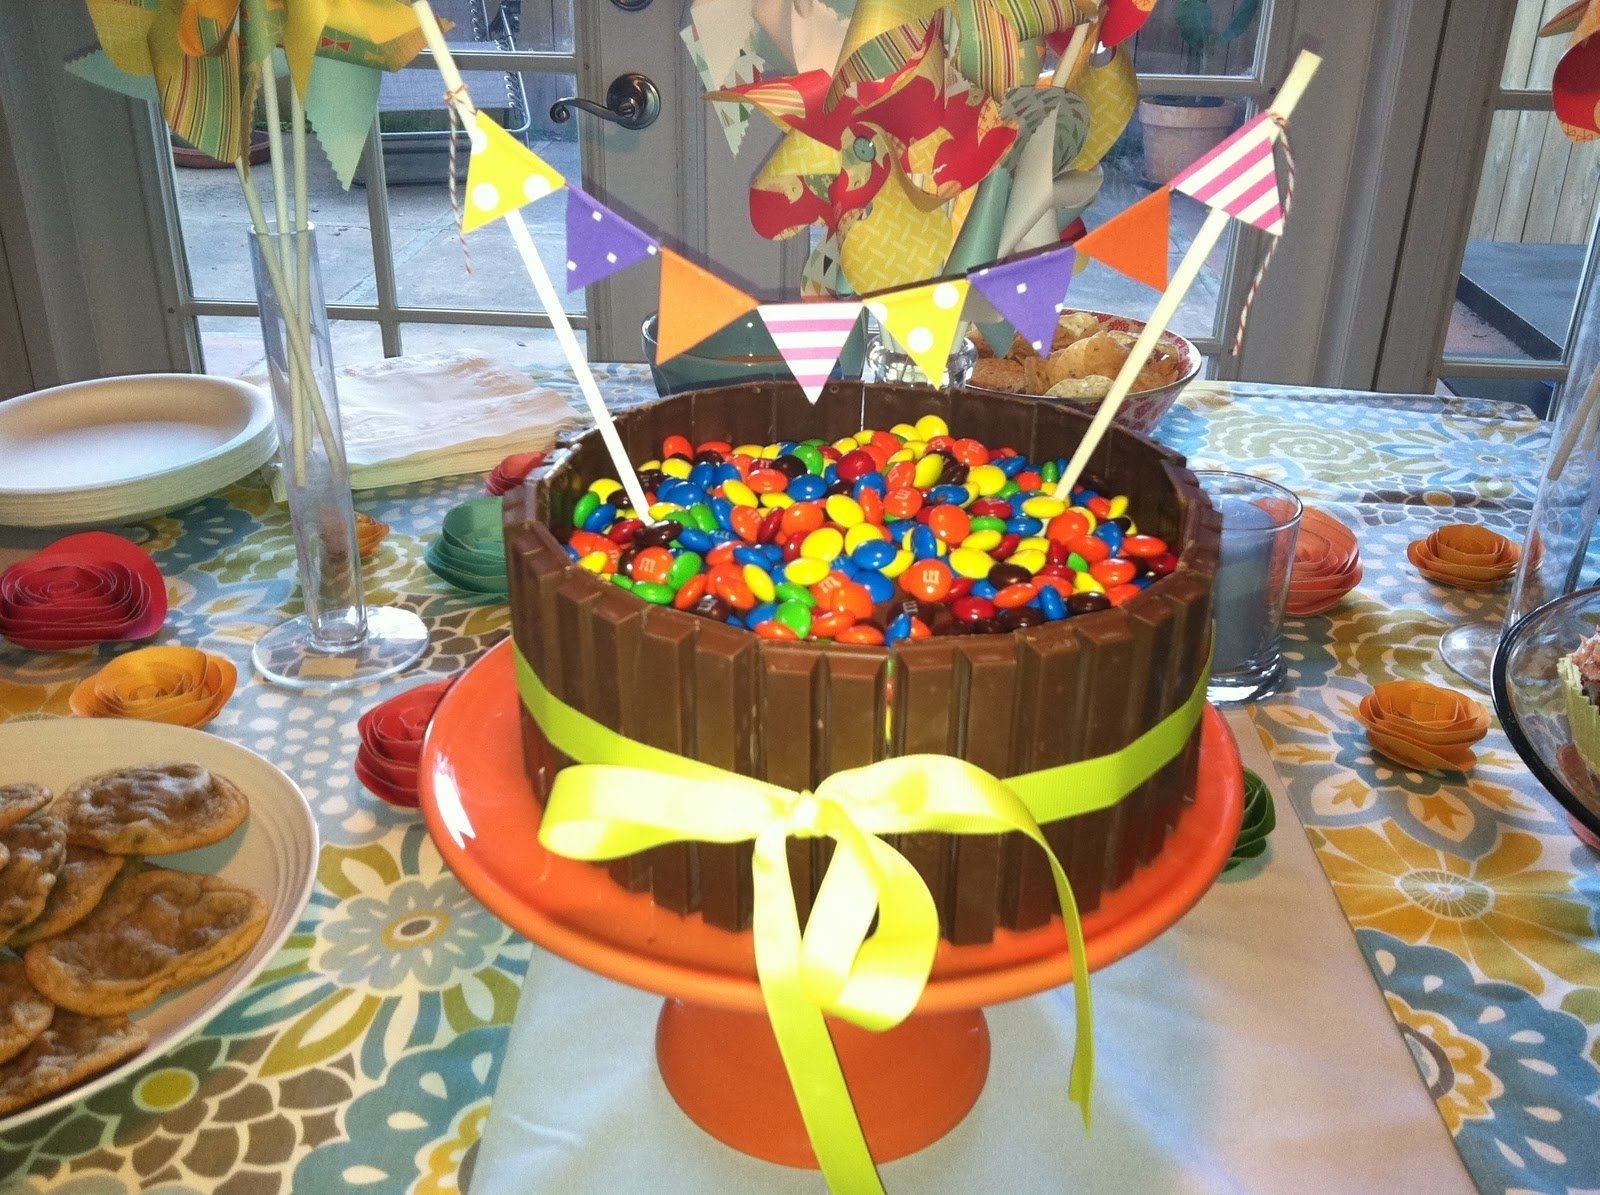 10 Spectacular Ideas For A Surprise Birthday Party birthday surprise ideas for best friend best in travel 2018 2 2020